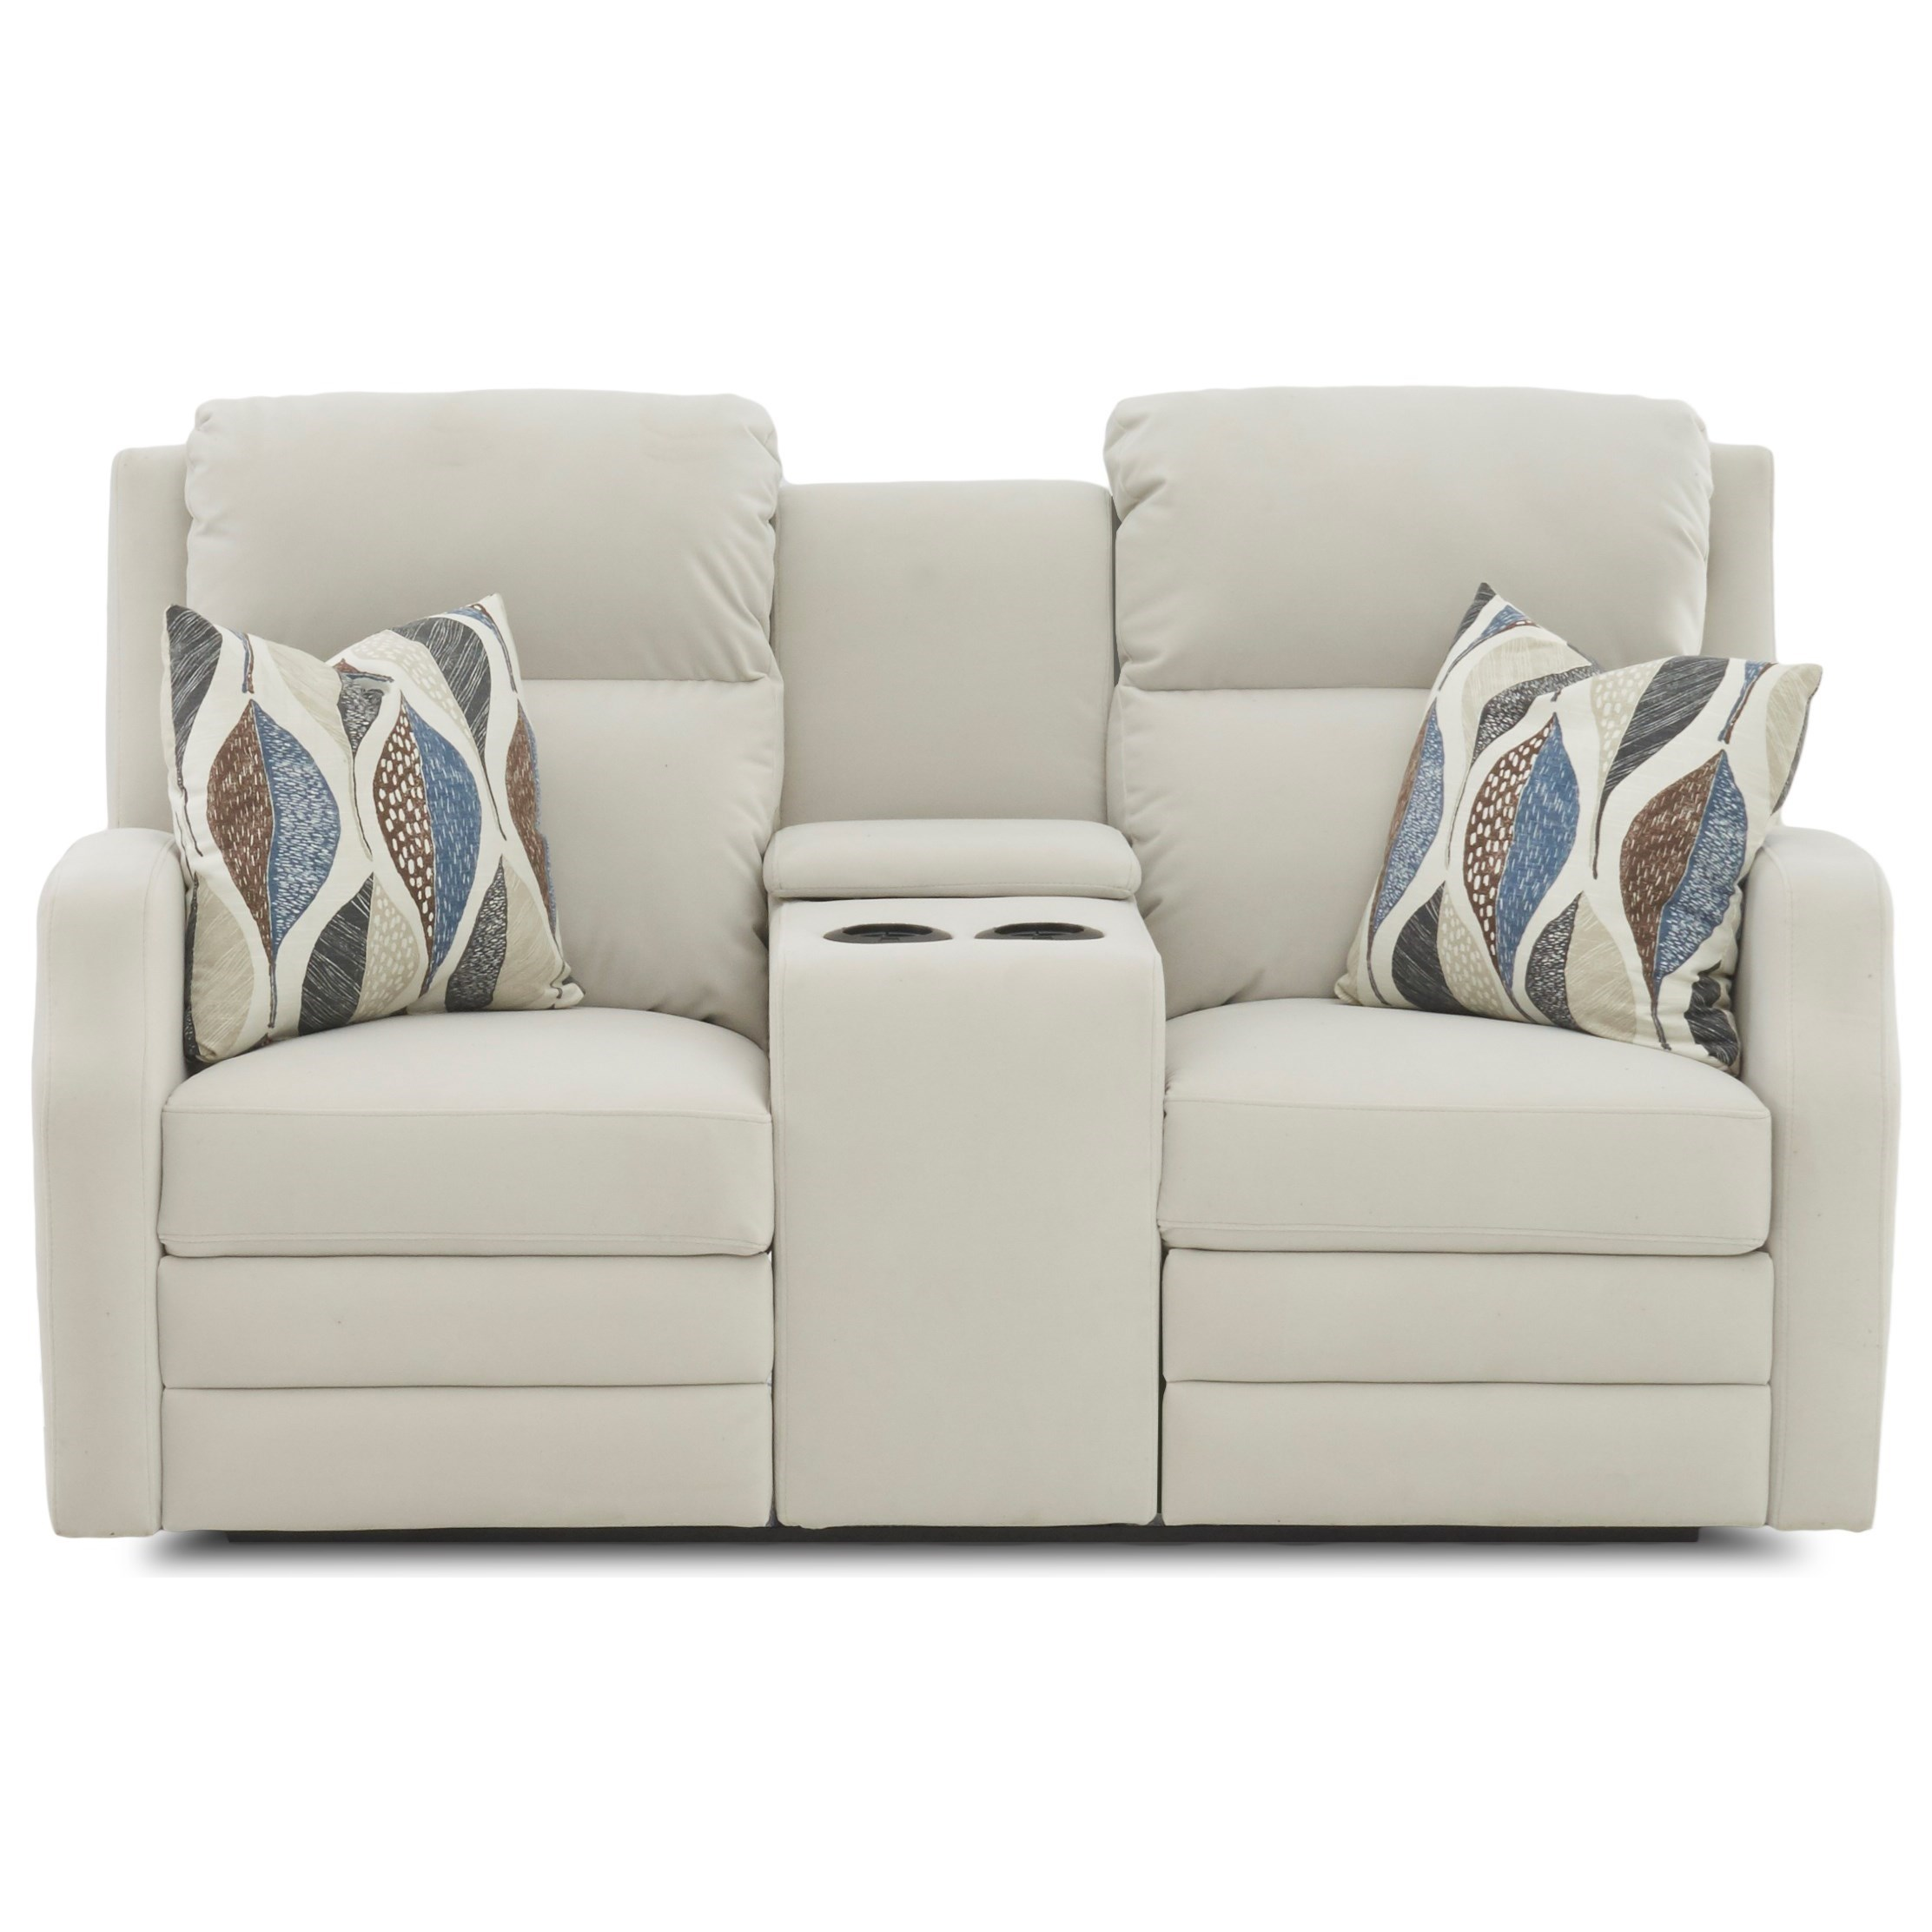 Power Reclining Console Loveseat with USB Charging Ports and Toss Pillows